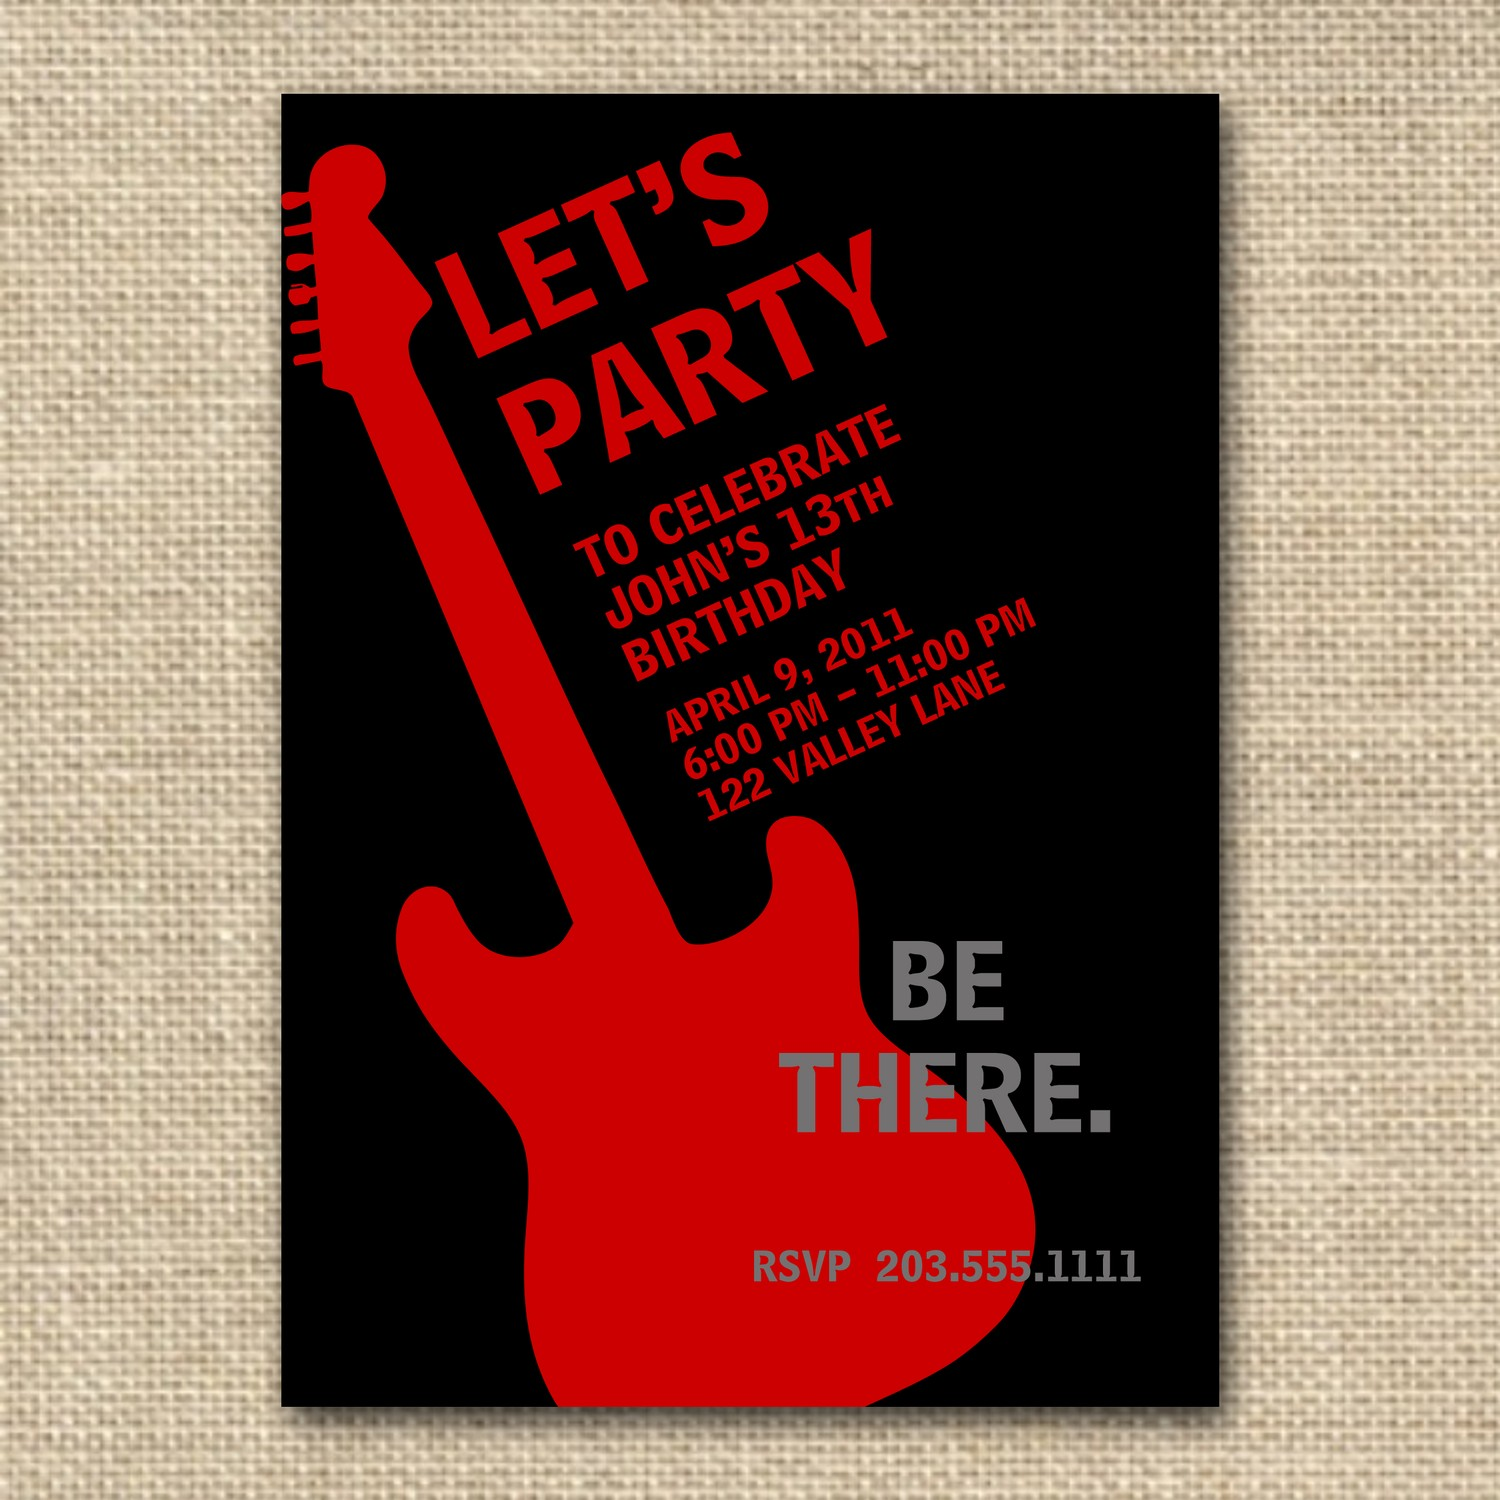 invitation cards for birthday party for teenagers ; Fabulous-Birthday-Invitation-Cards-For-Teenagers-40-In-HD-Image-Picture-Ideas-with-Birthday-Invitation-Cards-For-Teenagers